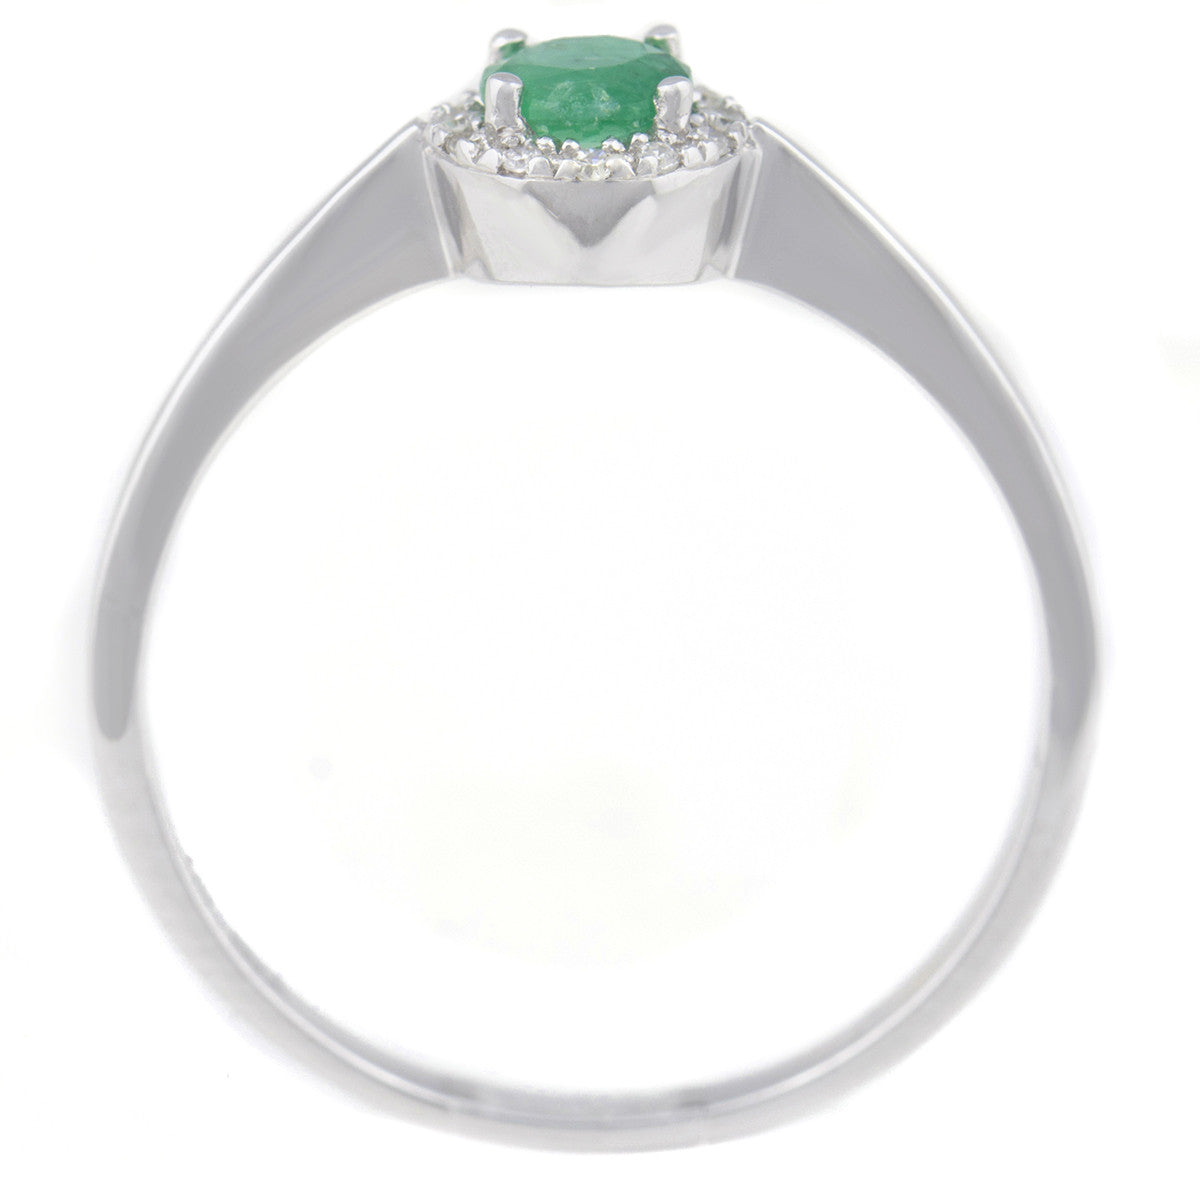 9K SOLID WHITE GOLD 0.30CT NATURAL EMERALD HALO RING WITH 12 DIAMONDS.